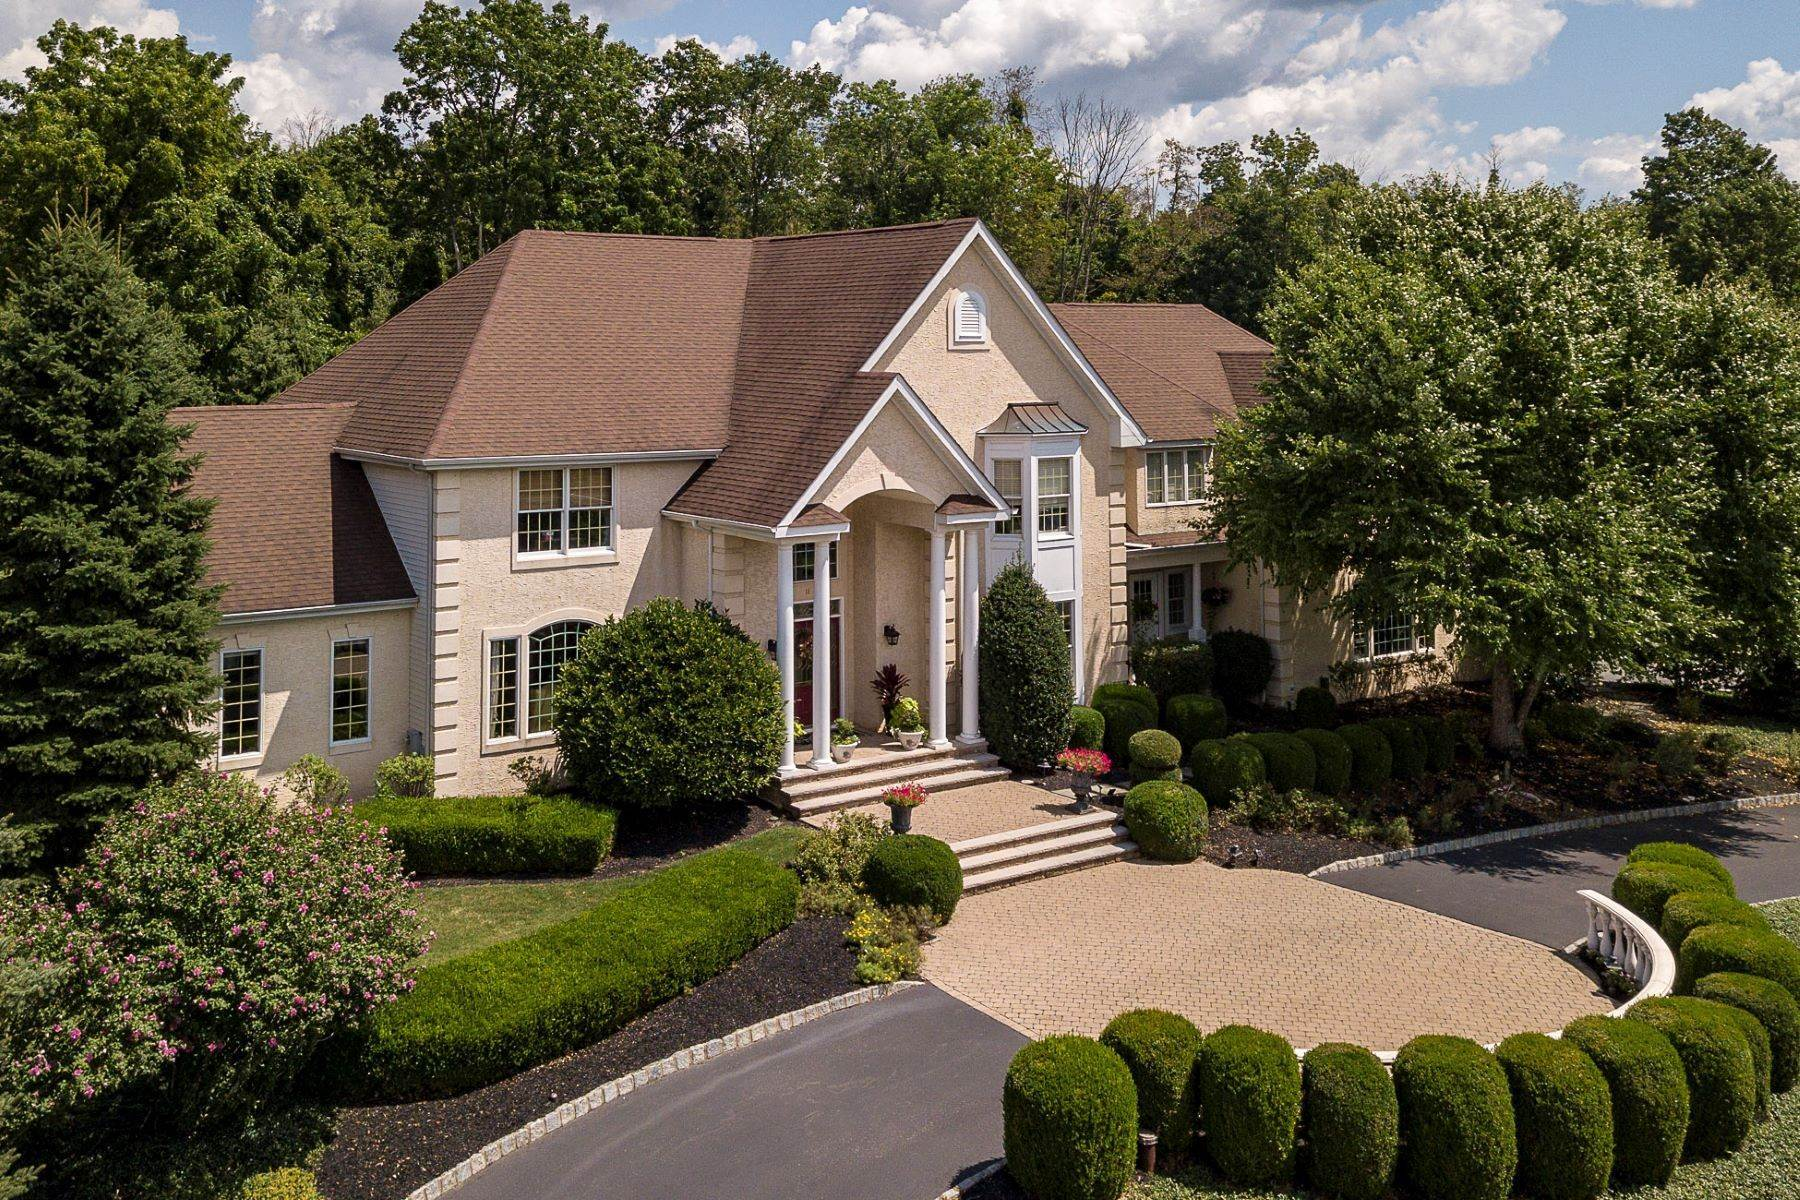 Single Family Homes for Sale at Spectacular Home For The Luxury Buyer 11 Turtle Court Flemington, New Jersey 08822 United States